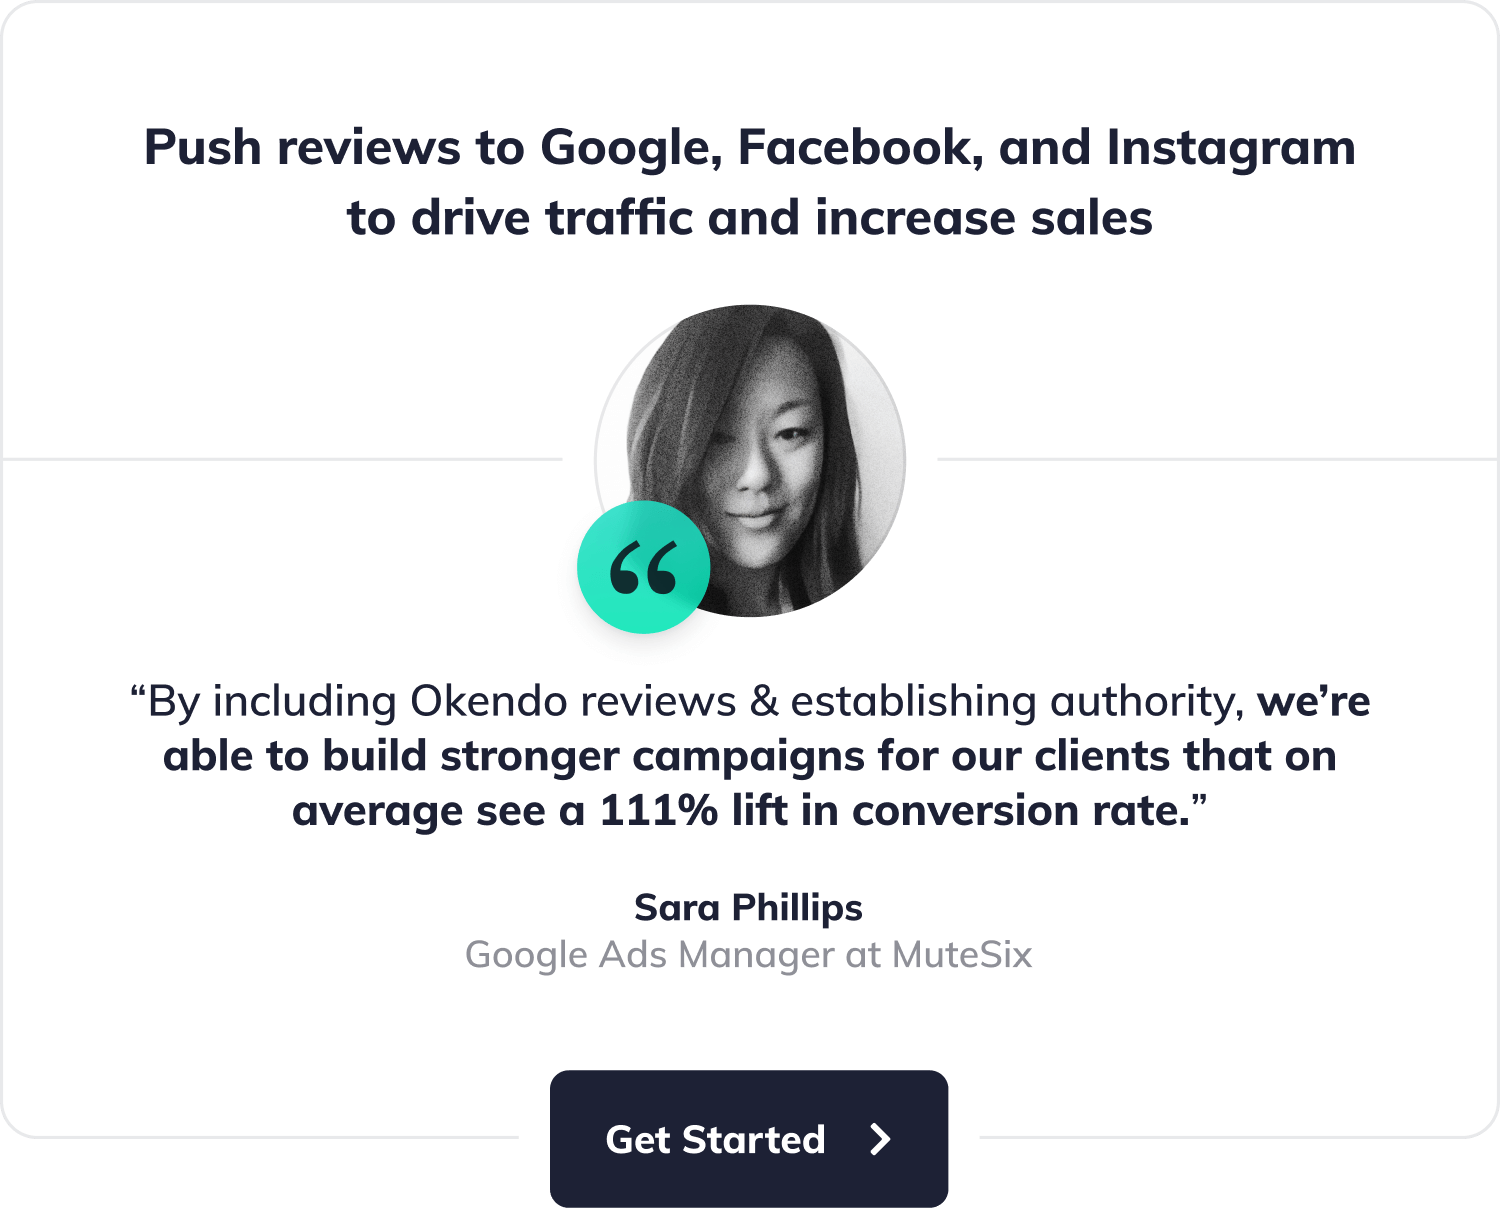 """Push reviews to Google, Facebook, and Instagram to drive traffic and increase sales. """"By including Okendo reviews & establishing authority, we're able to build stronger campaigns for our clients that on average see a 111% lift in conversion rate"""